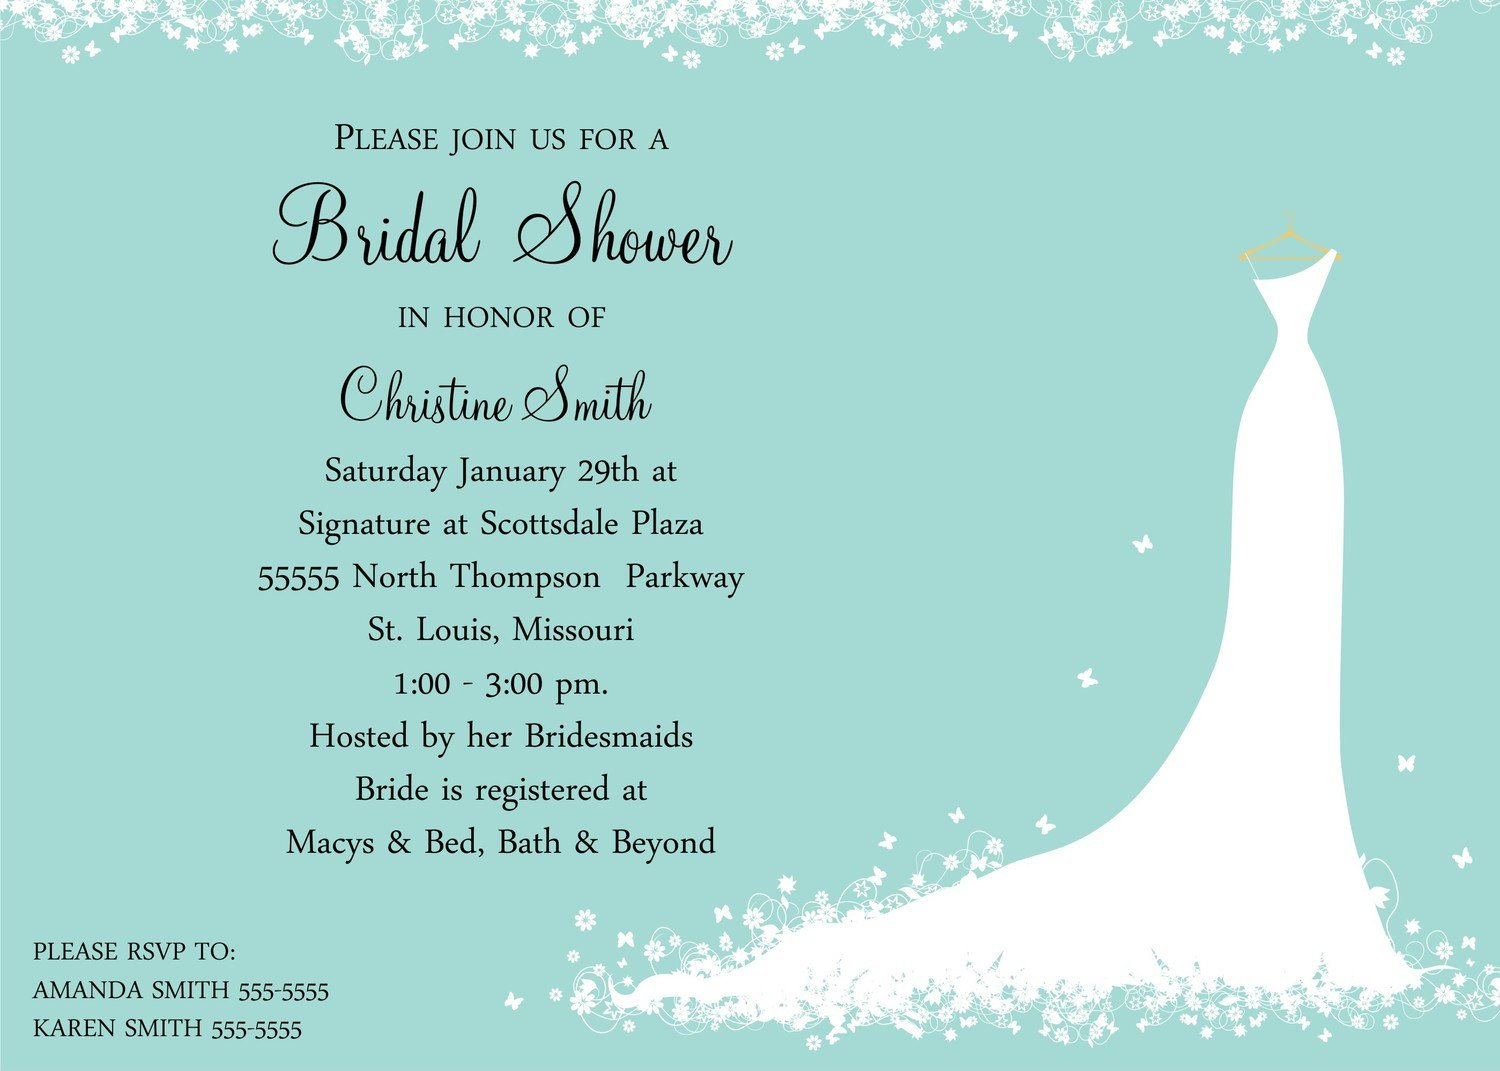 Wedding Shower Invite Templates Bridal Shower Invitation Bride